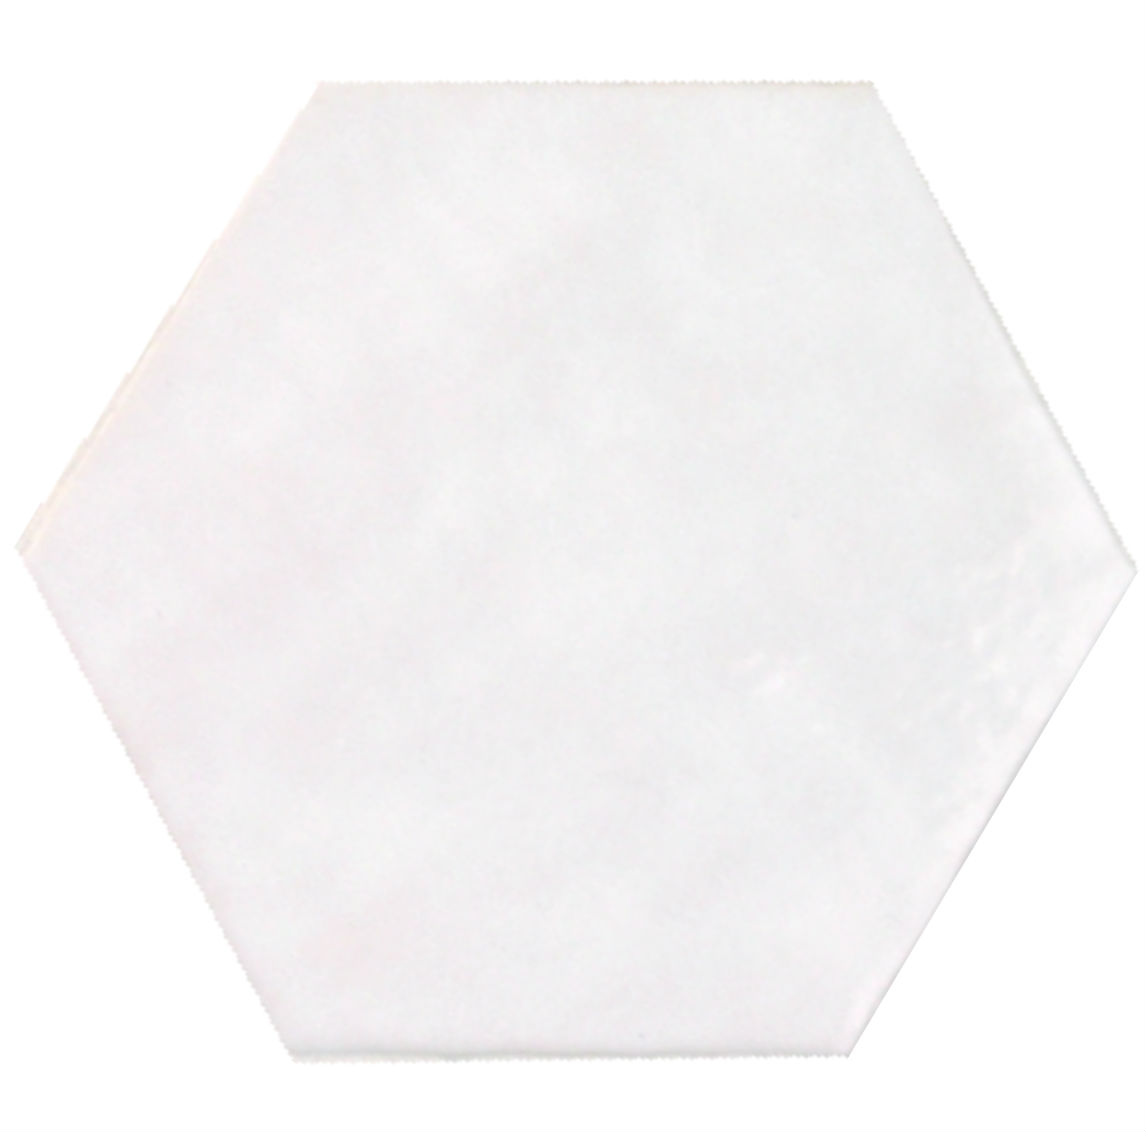 Natucer New Panal Hexagon Dia 15x17